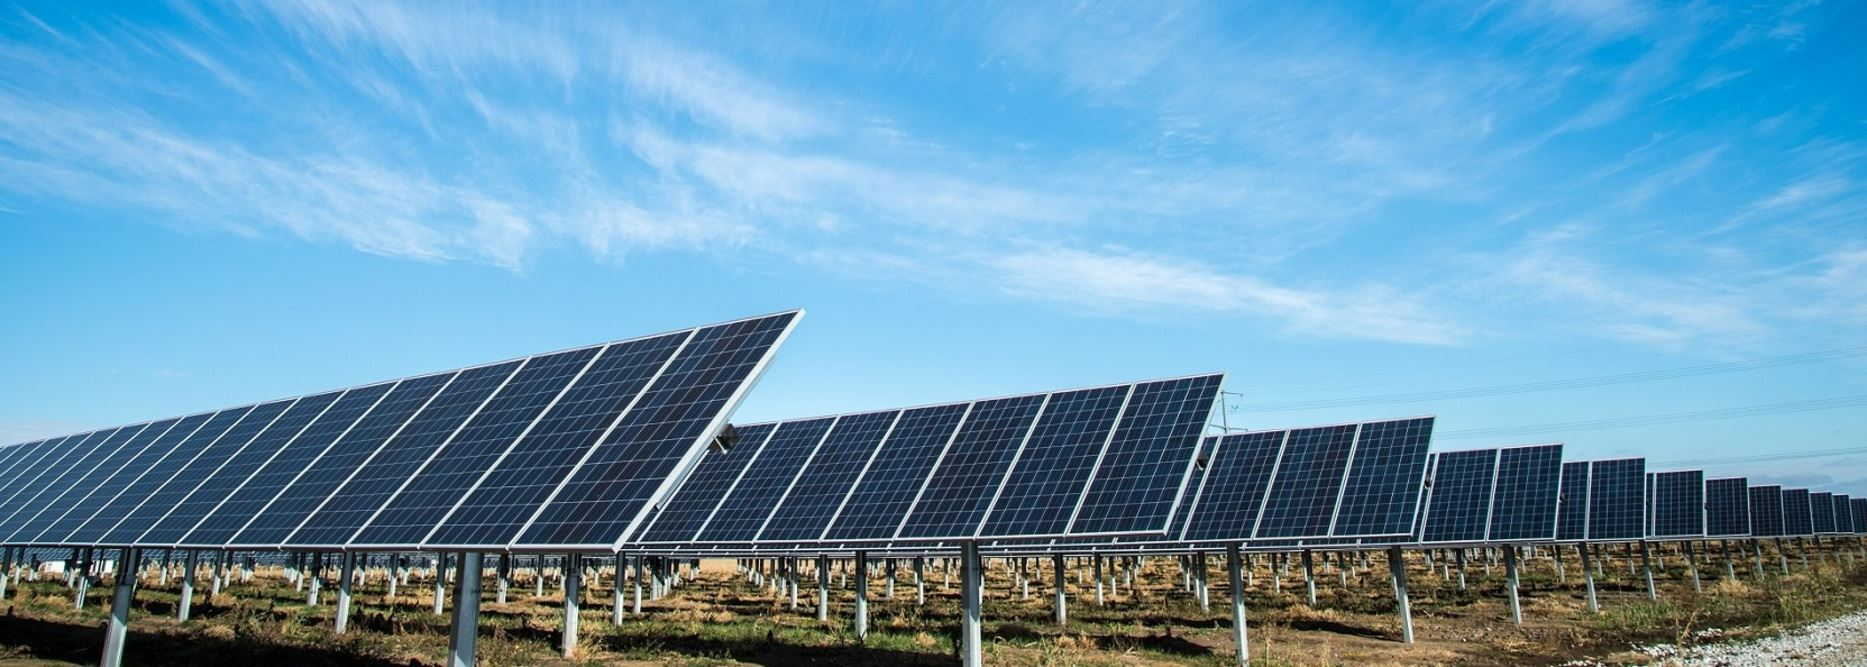 large angled solar power panels in field with slightly cloudy blue skies